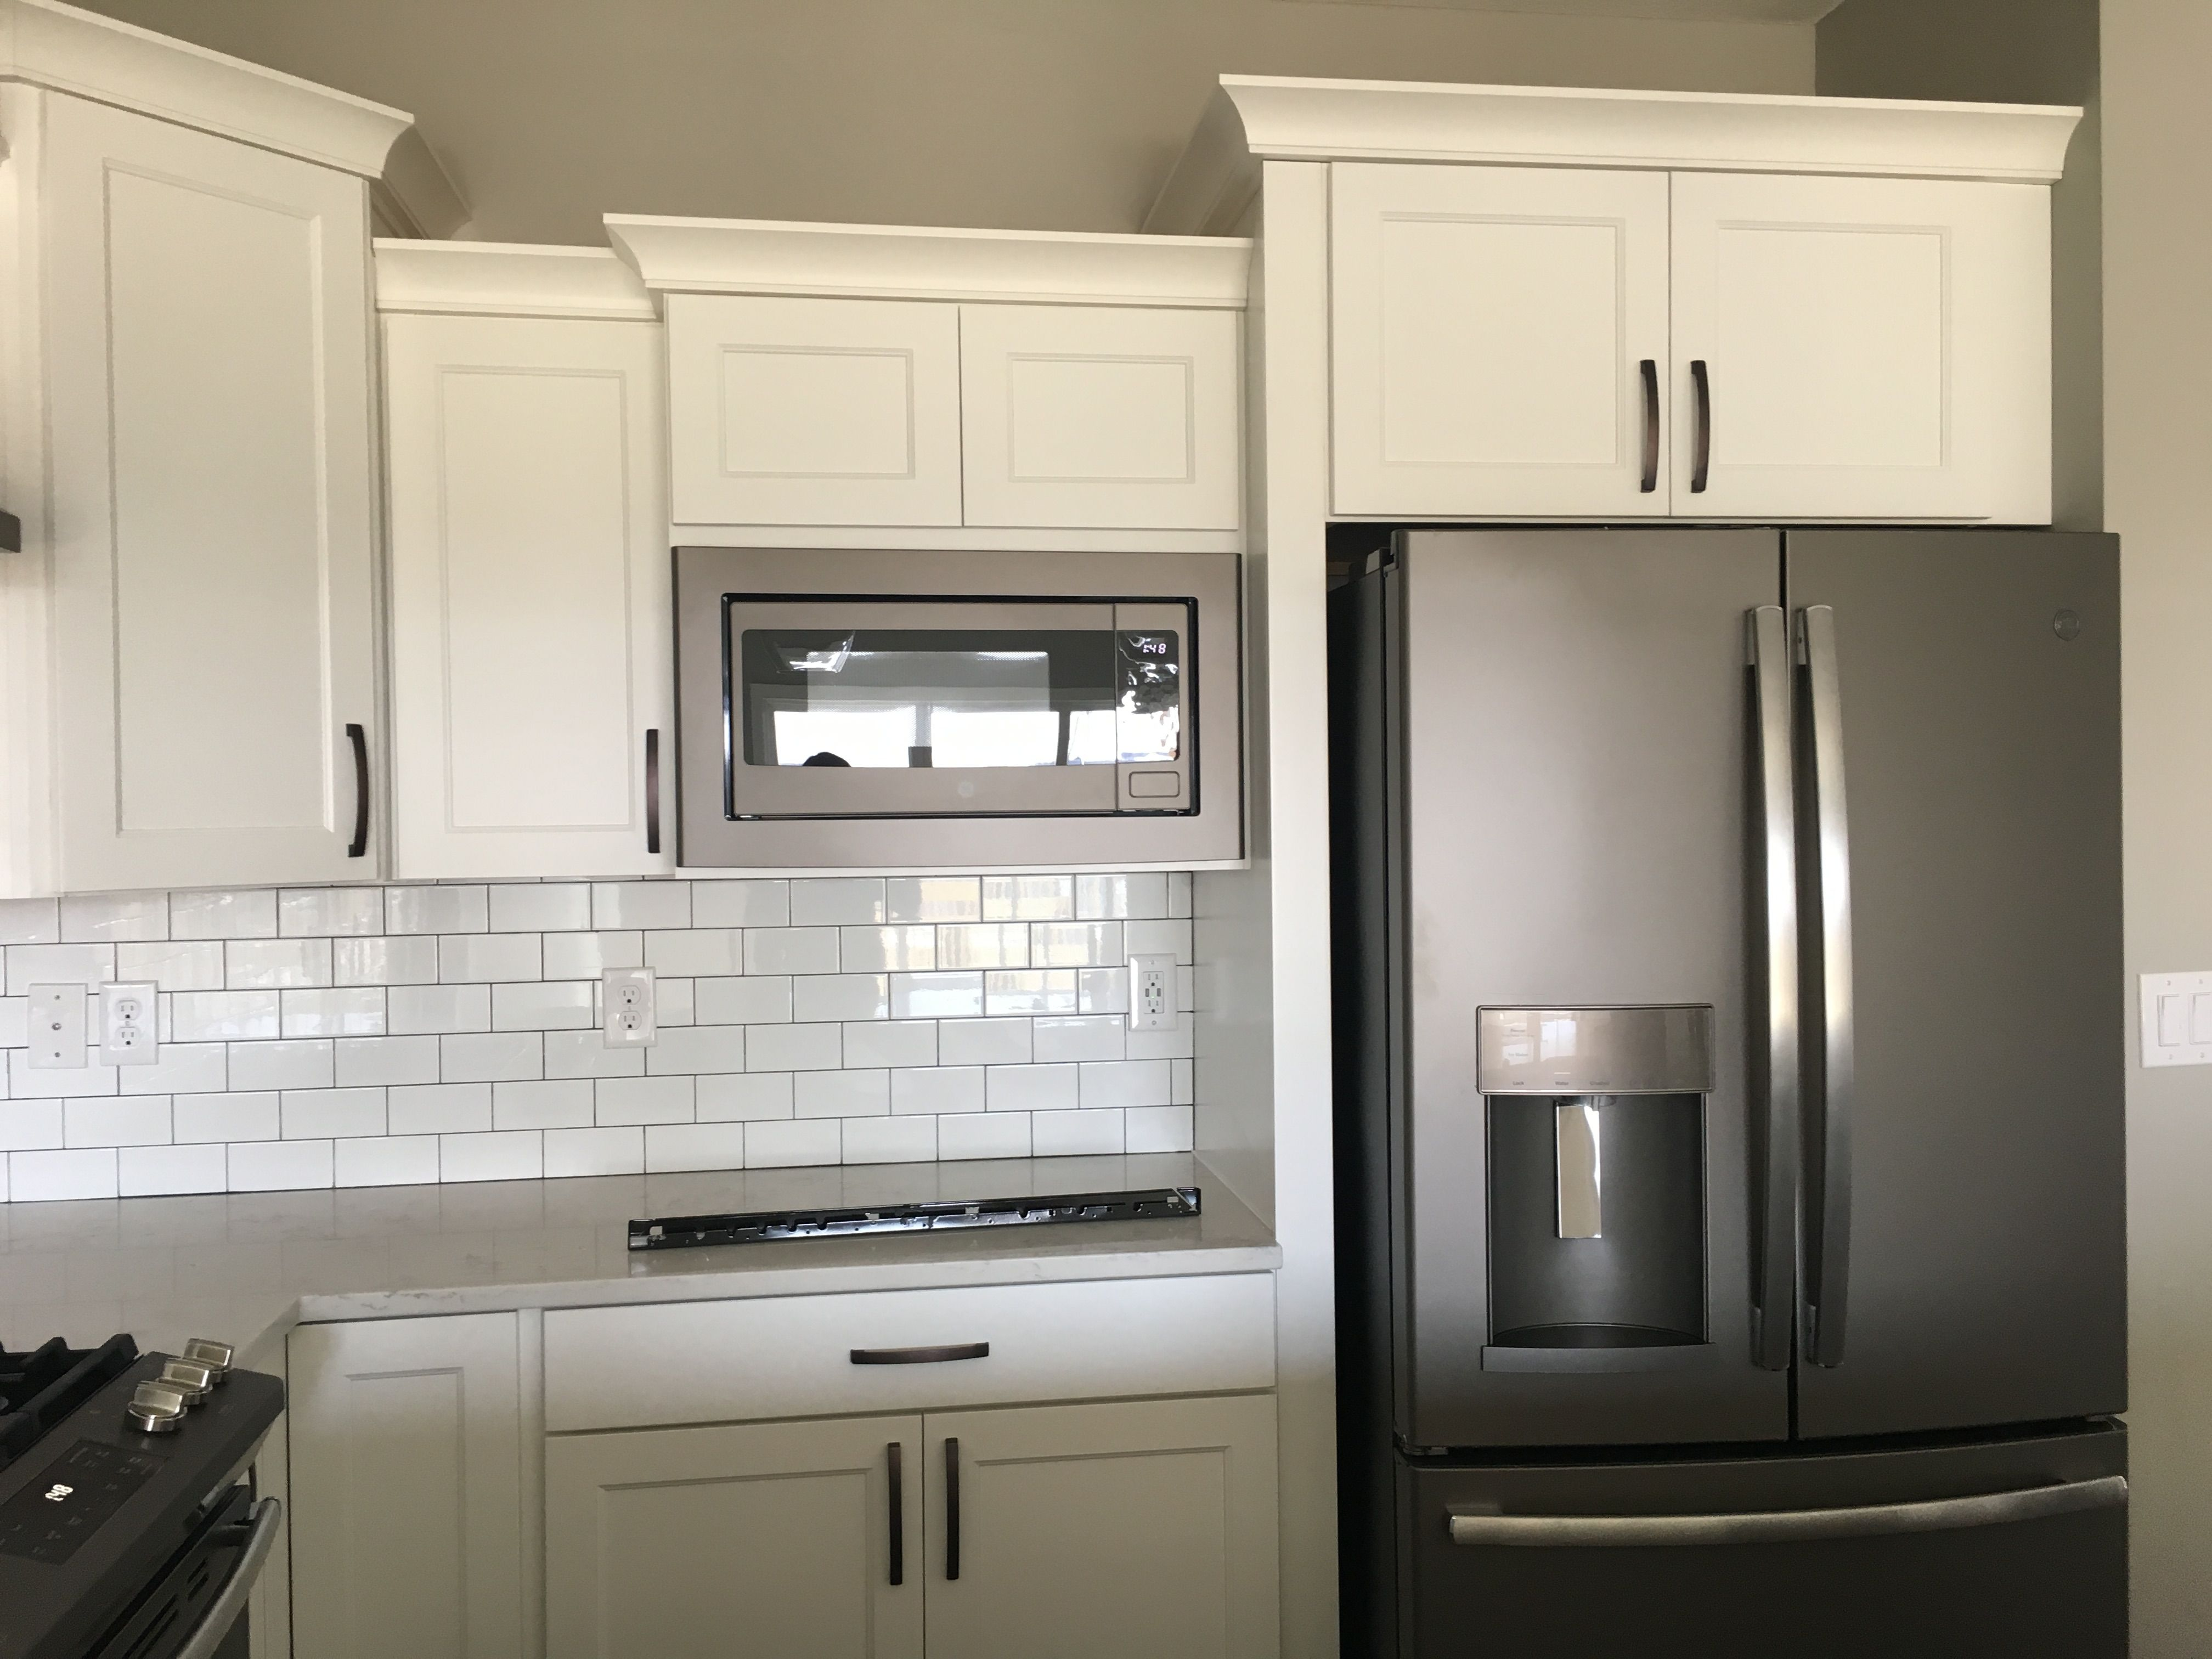 Built In Microwave Next To Refrigerator Slate Finish Appliances